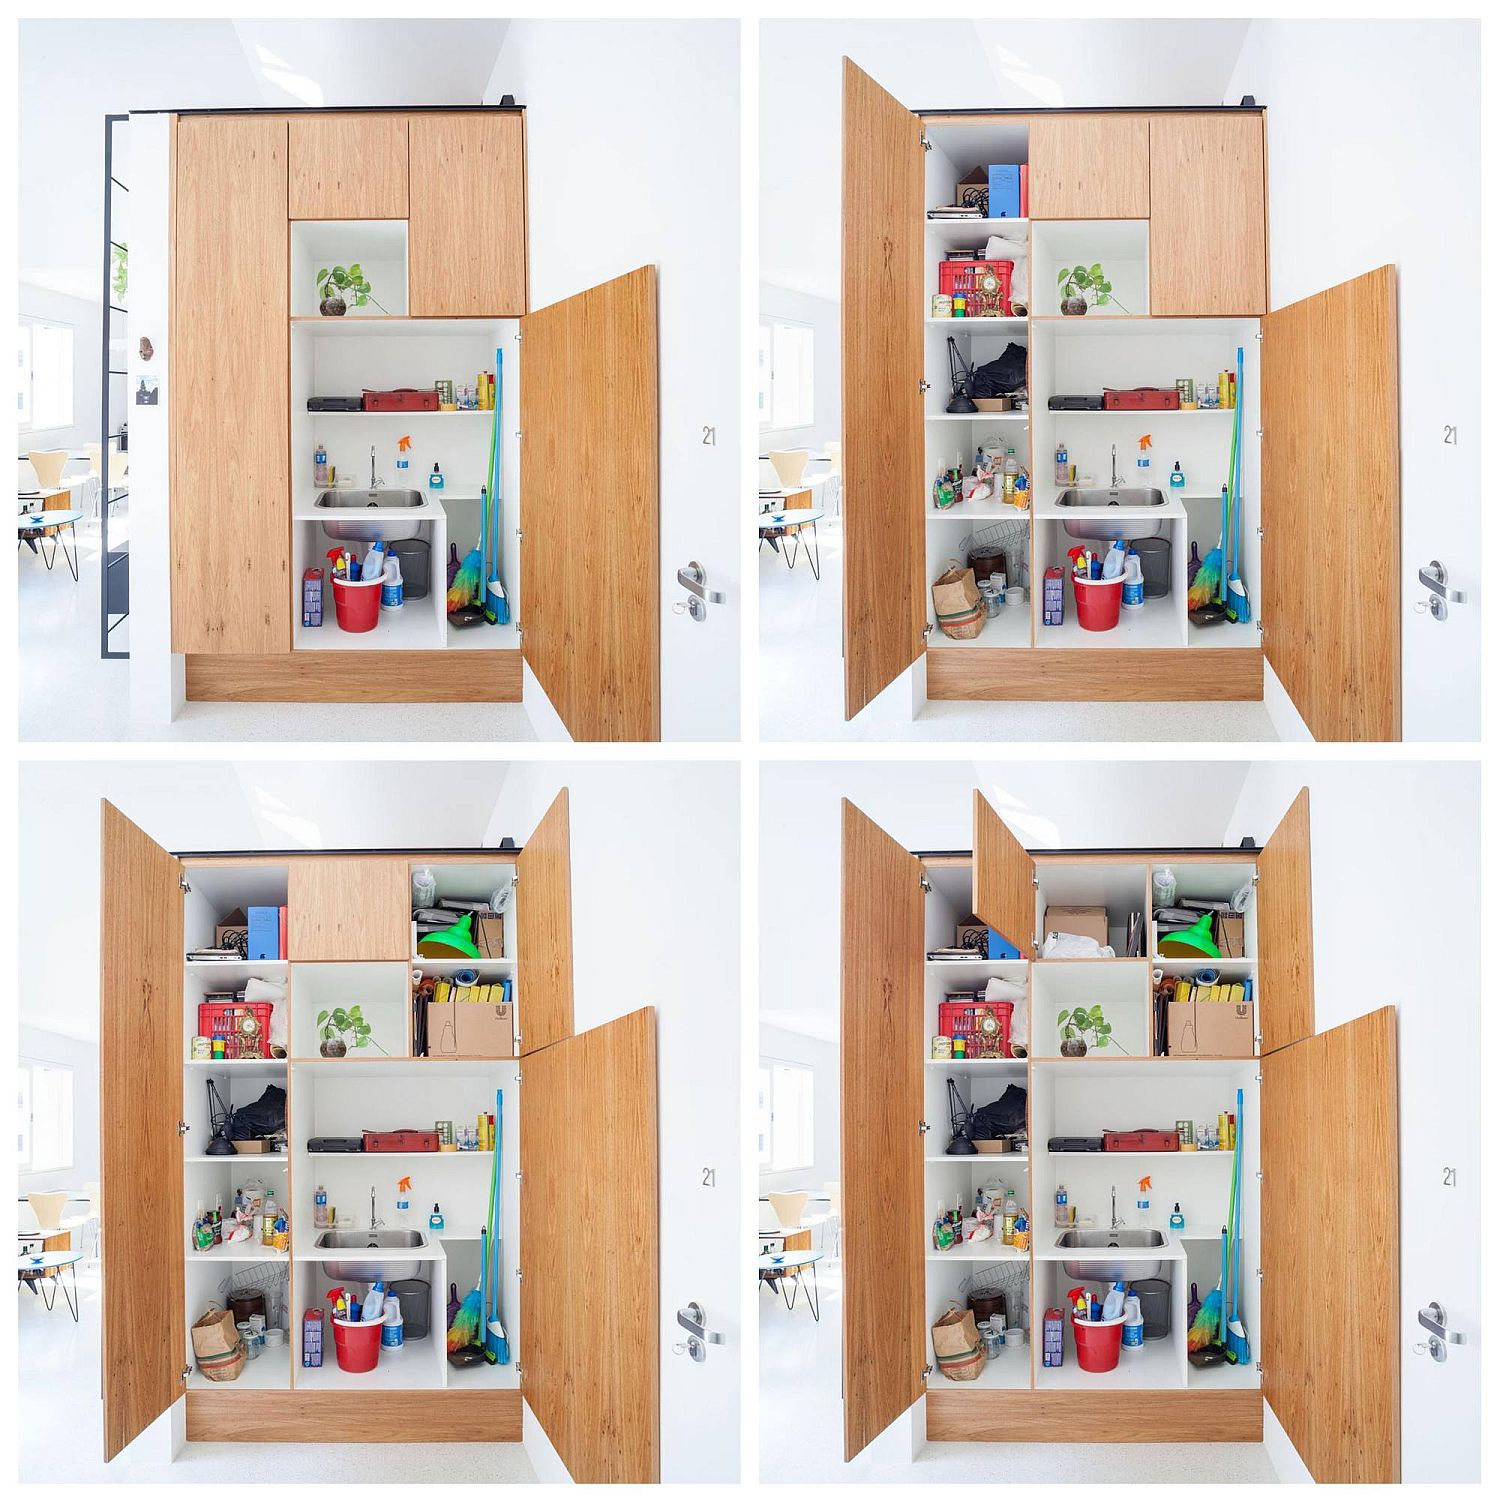 Big pantry cabinet in the living room hides pretty much everything and anything